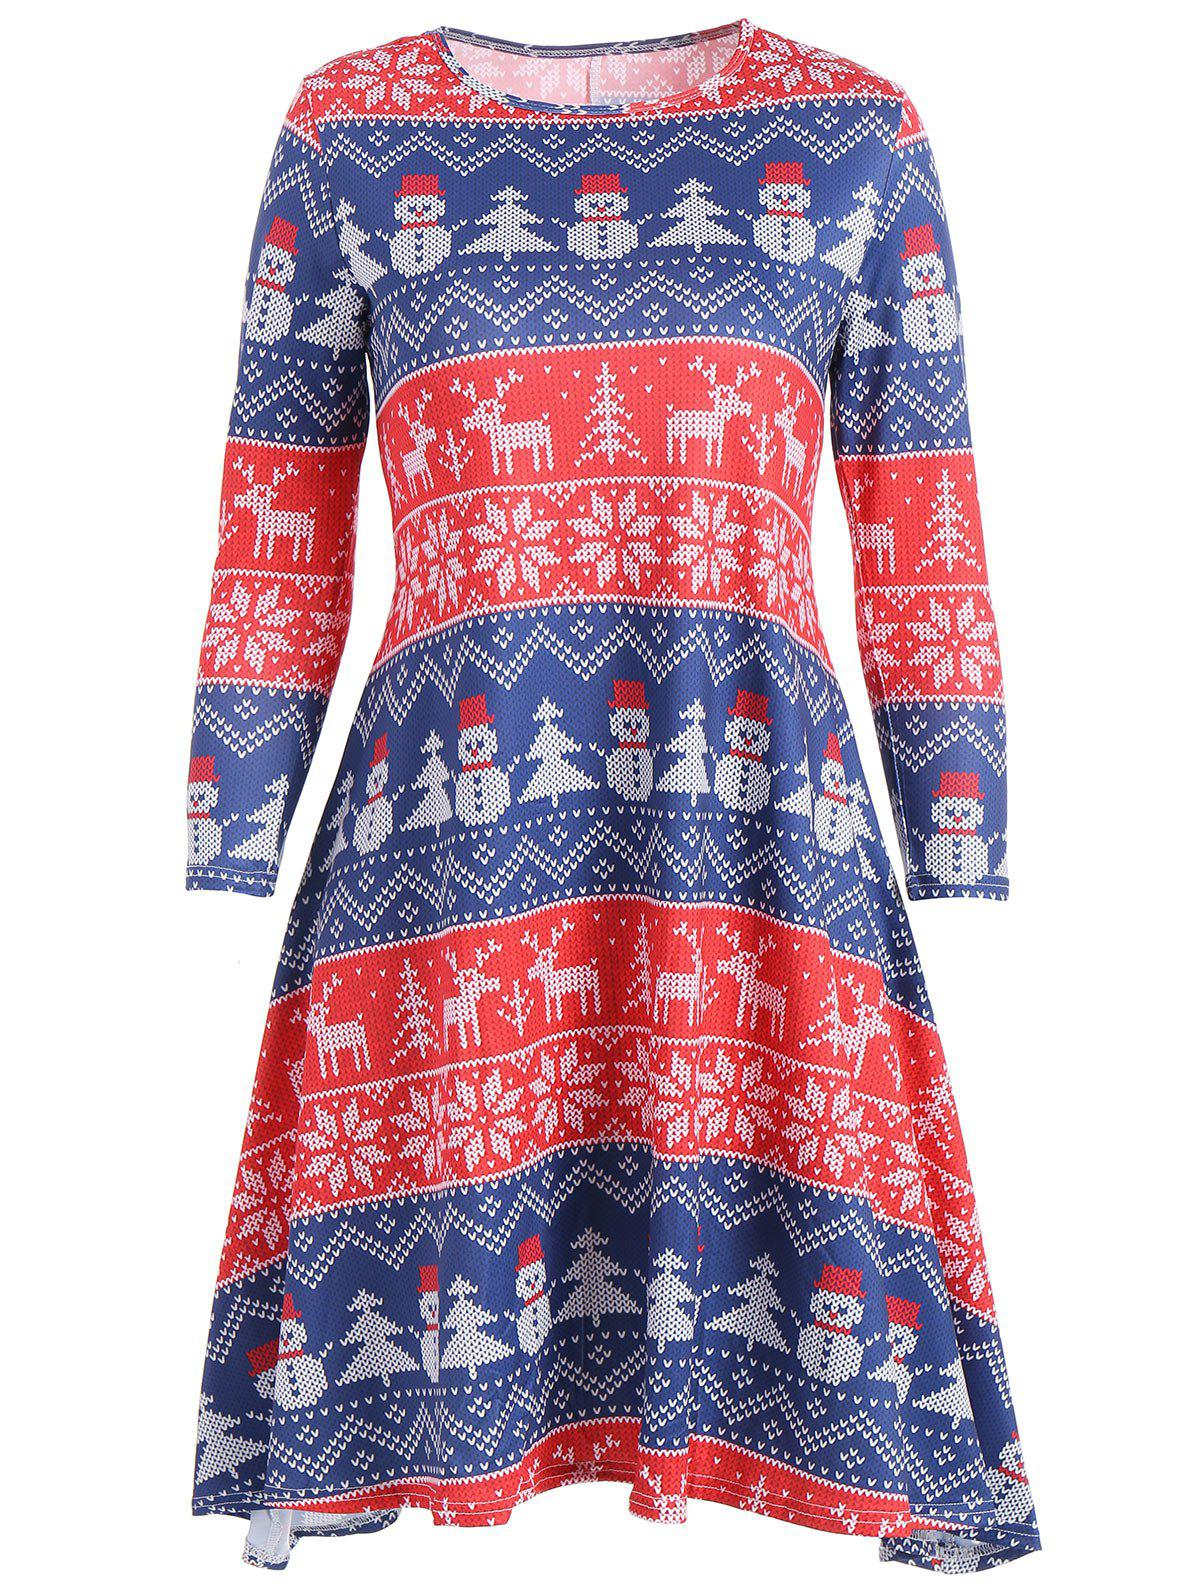 Snowman Snowflake Print Christmas Mini Swing Dress - Rouge ONE SIZE